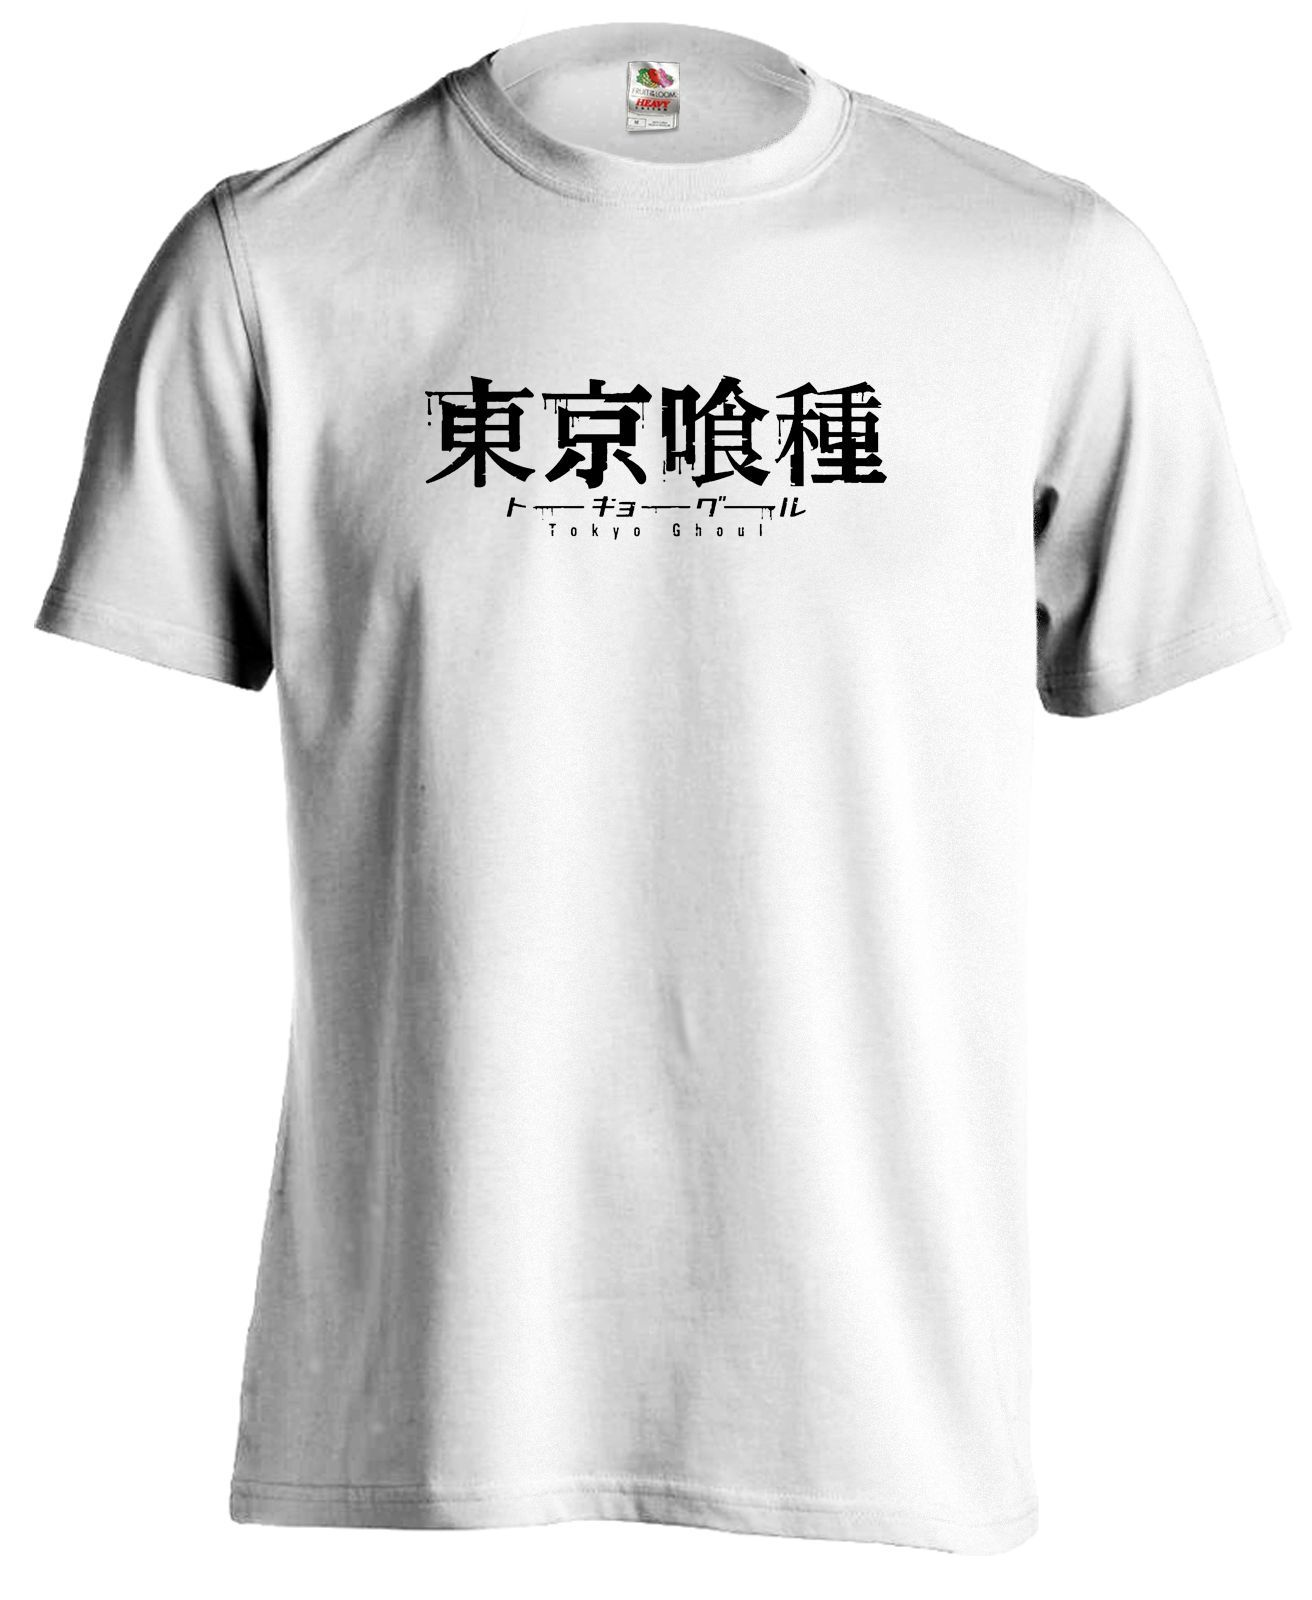 Tokyo Ghoul Japanese Logo Kaneki Manga Anime T shirt Tee New T Shirts Funny Tops Tee New Unisex Funny Tops in T Shirts from Men 39 s Clothing